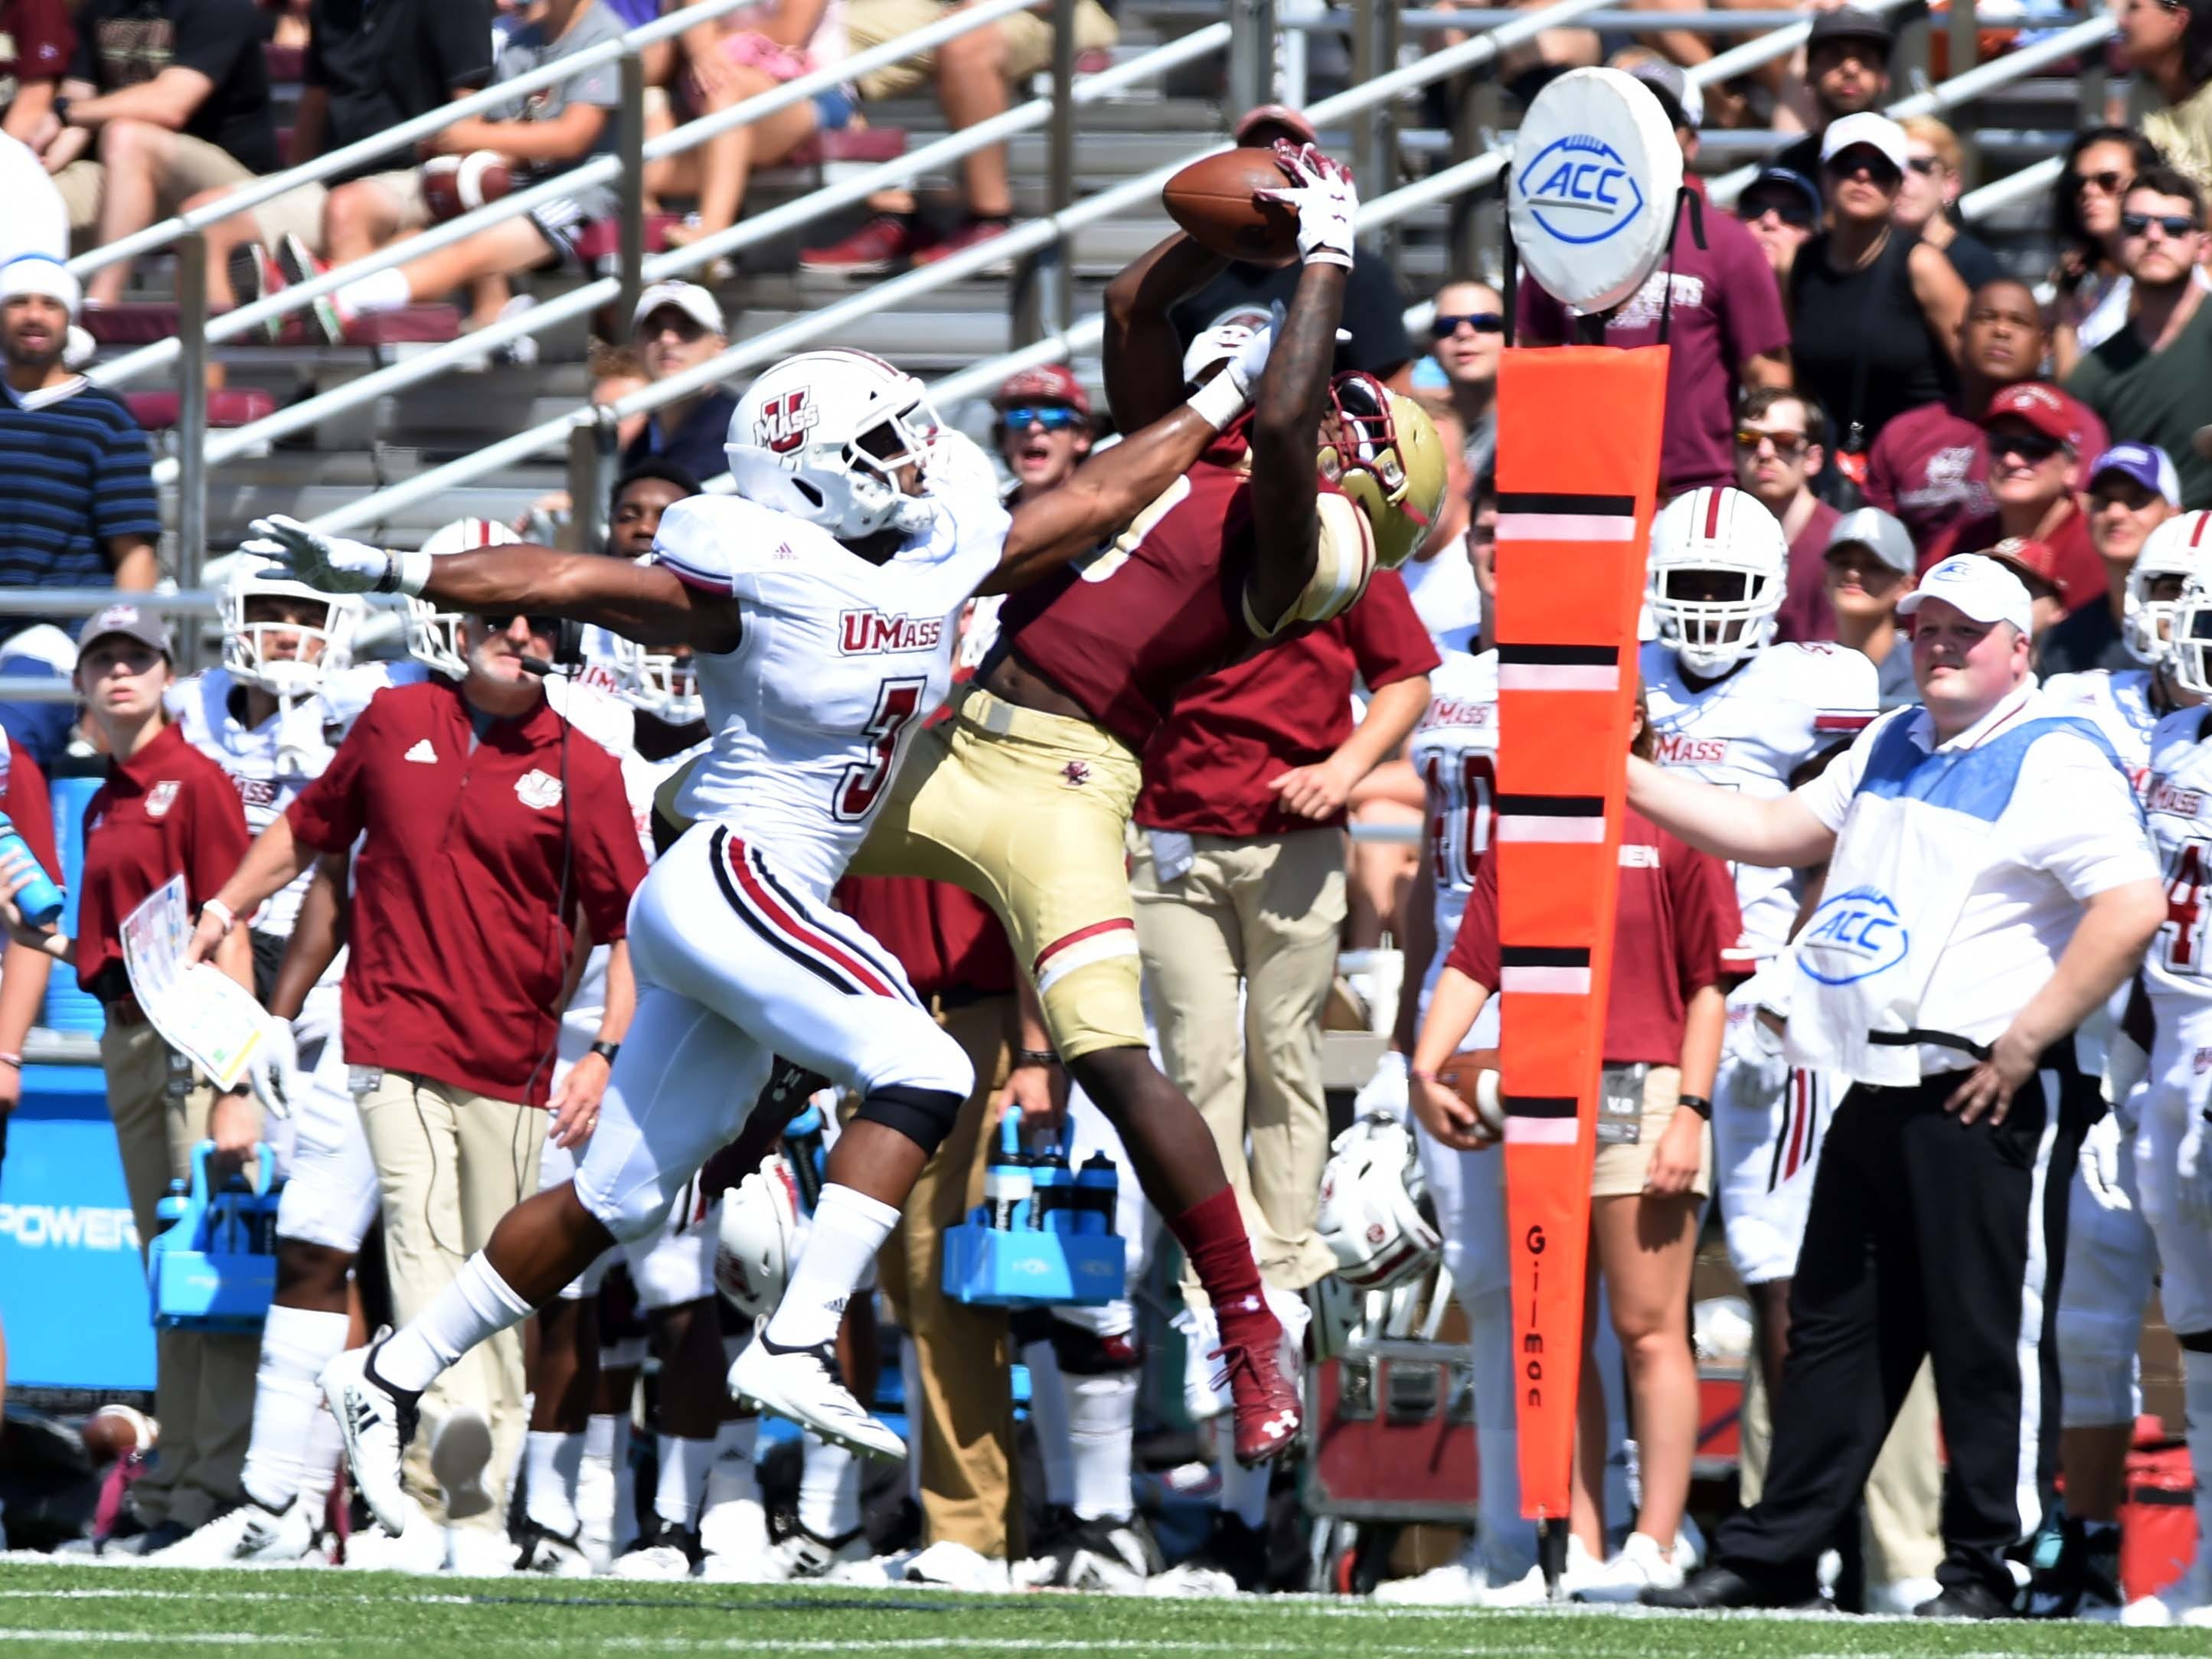 Boston College Eagles wide receiver Kobay White leaps high to match the catch against Massachusetts cornerback Lee Moses.